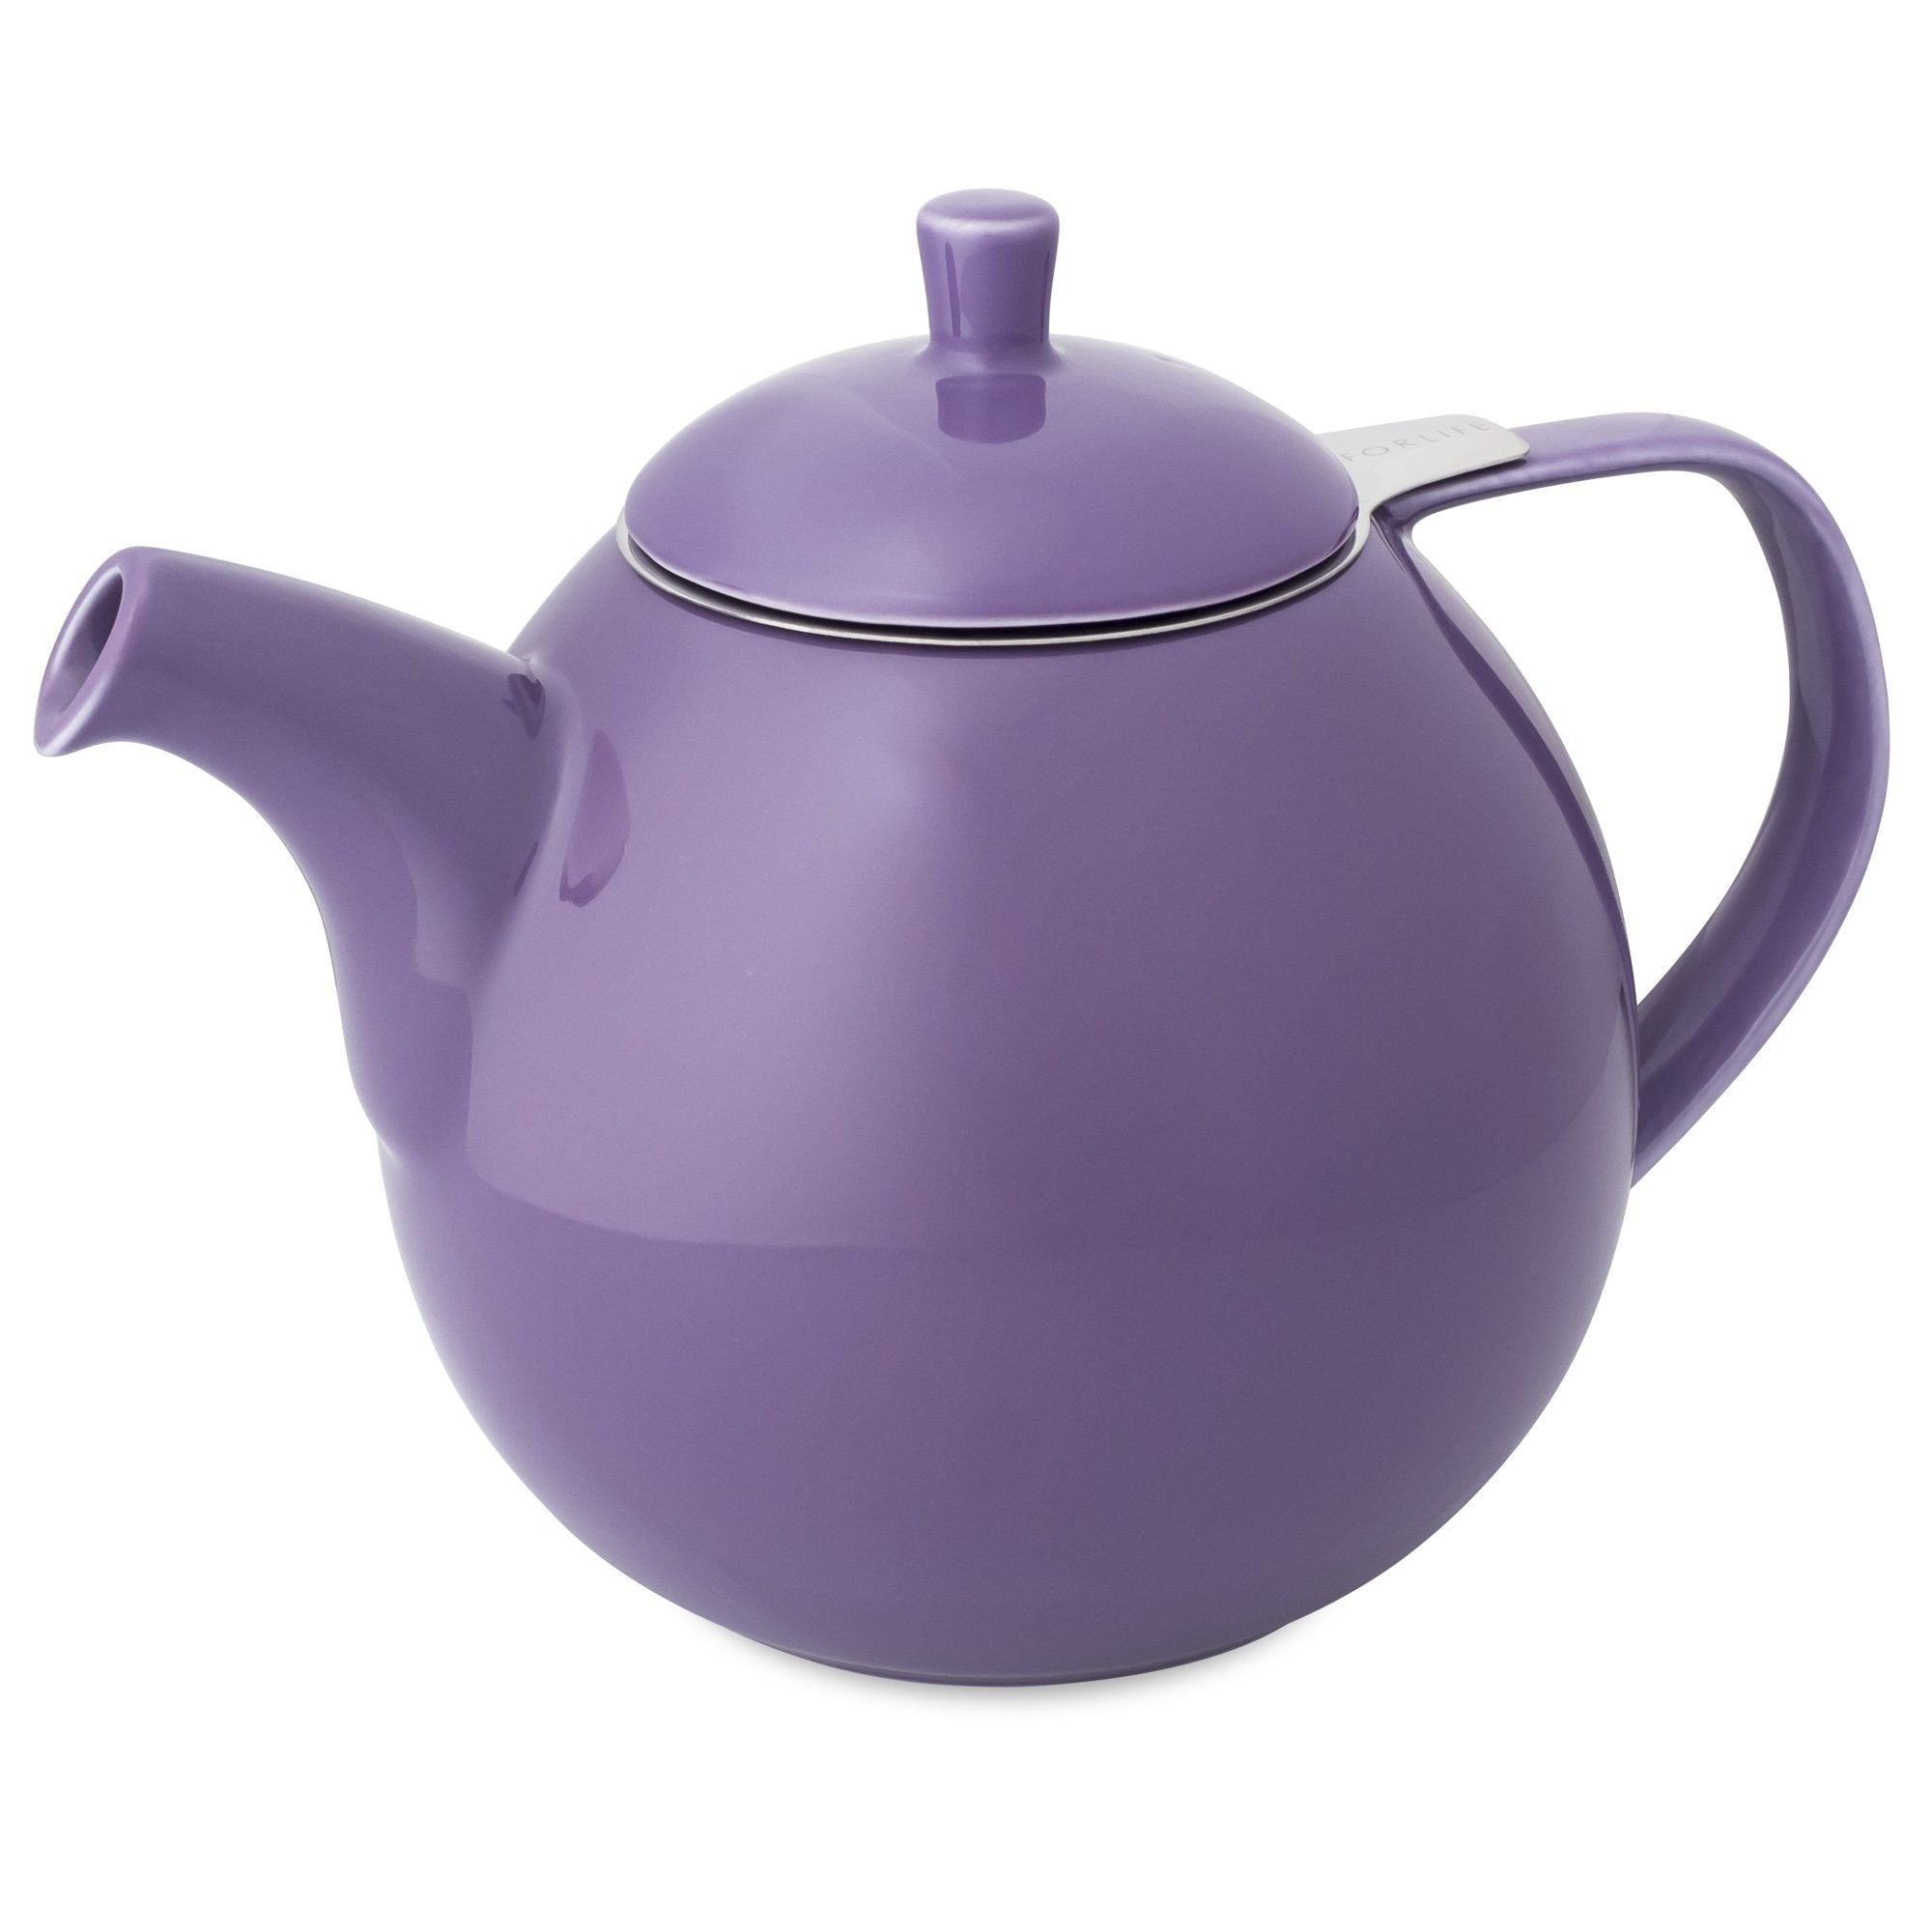 TeaLula 45 oz Curve purple Teapot glossy surface with lid